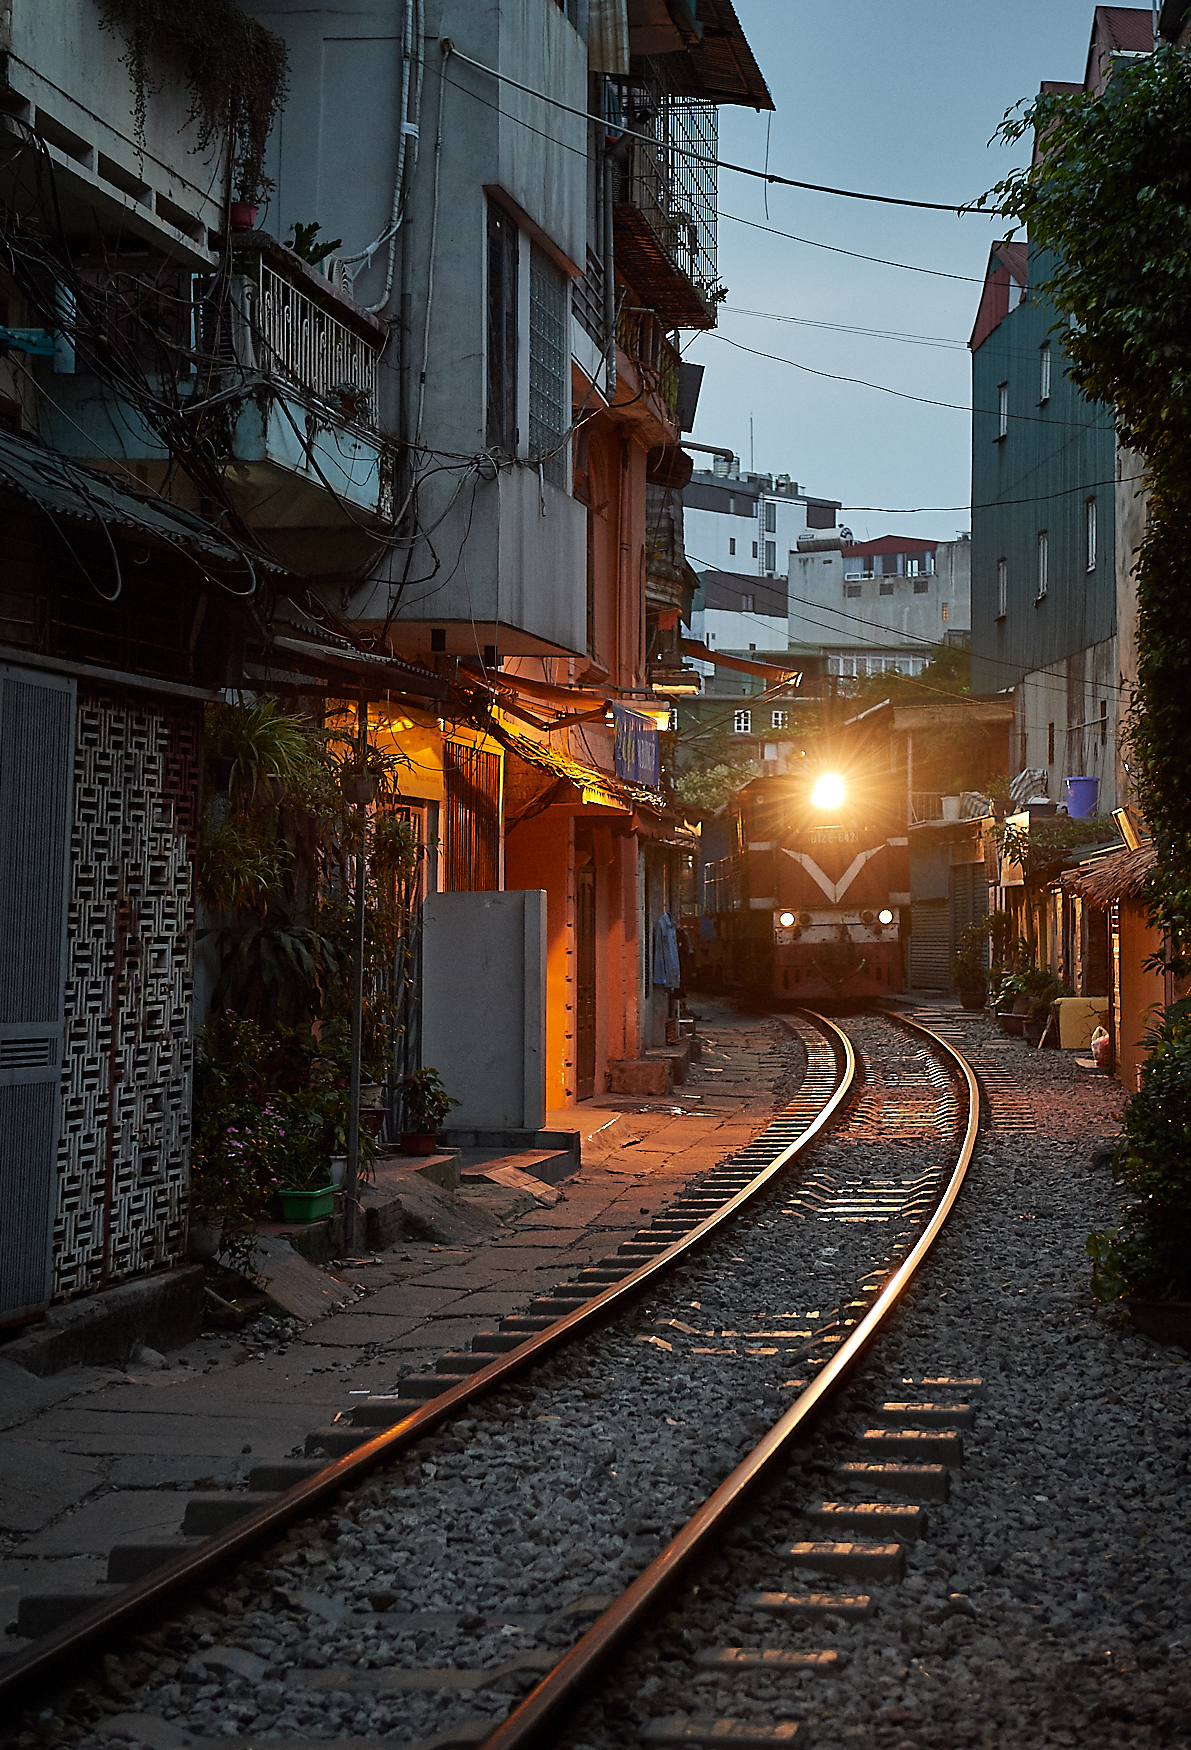 At 05:30 in the morning, just before dawn, the overnight train from Sapa comes in, thundering through the street and, for many locals, this is their wake-up call.